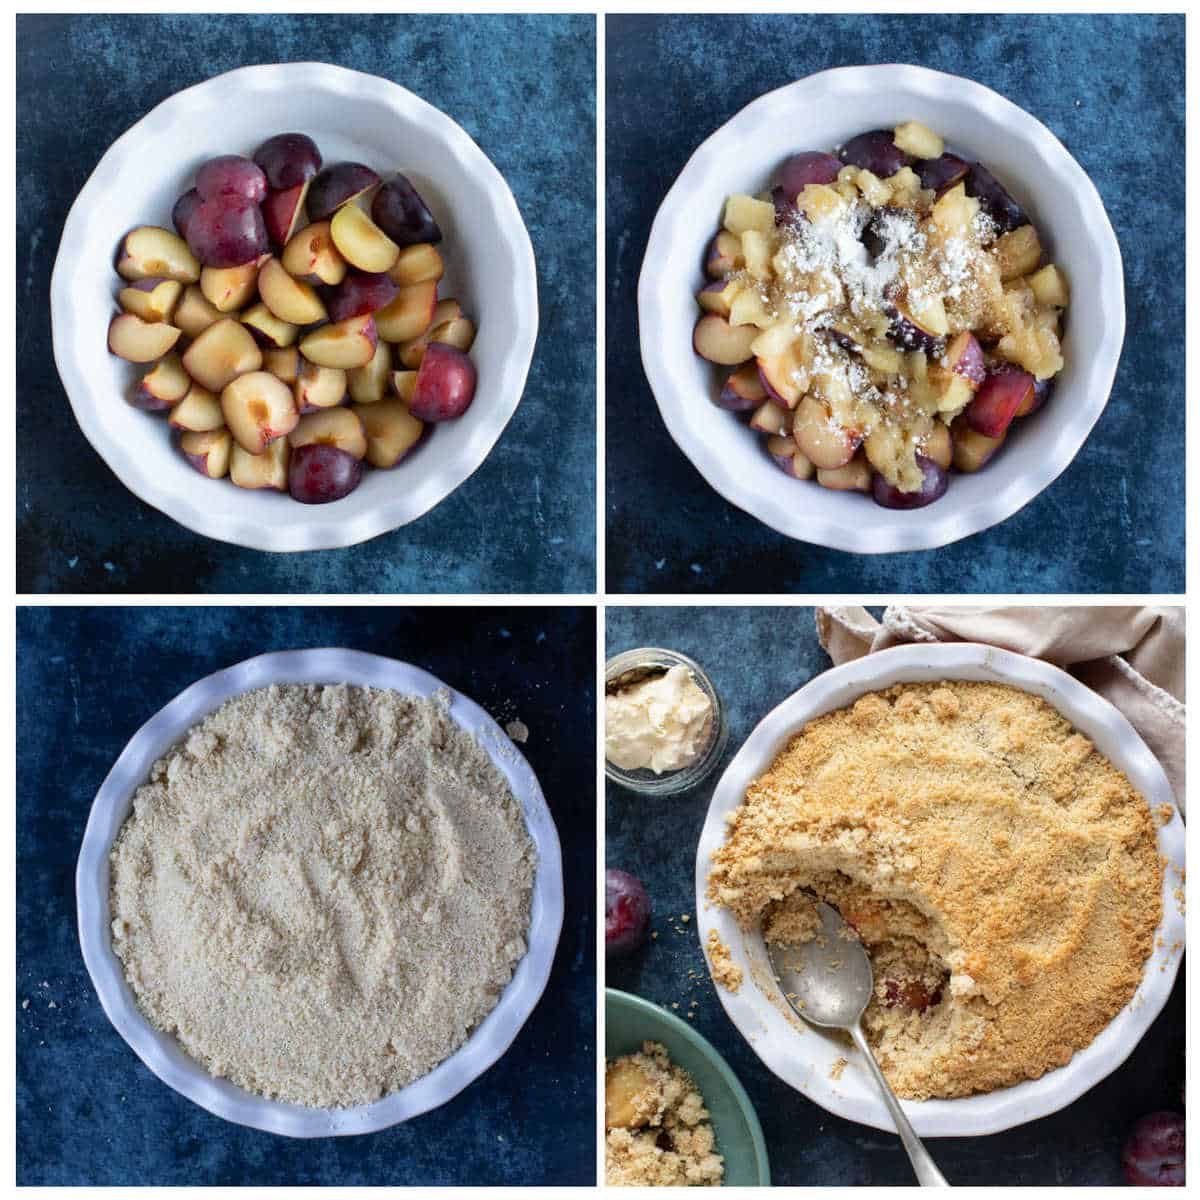 Step by step instruction photo collage for making the plum and apple crumble.